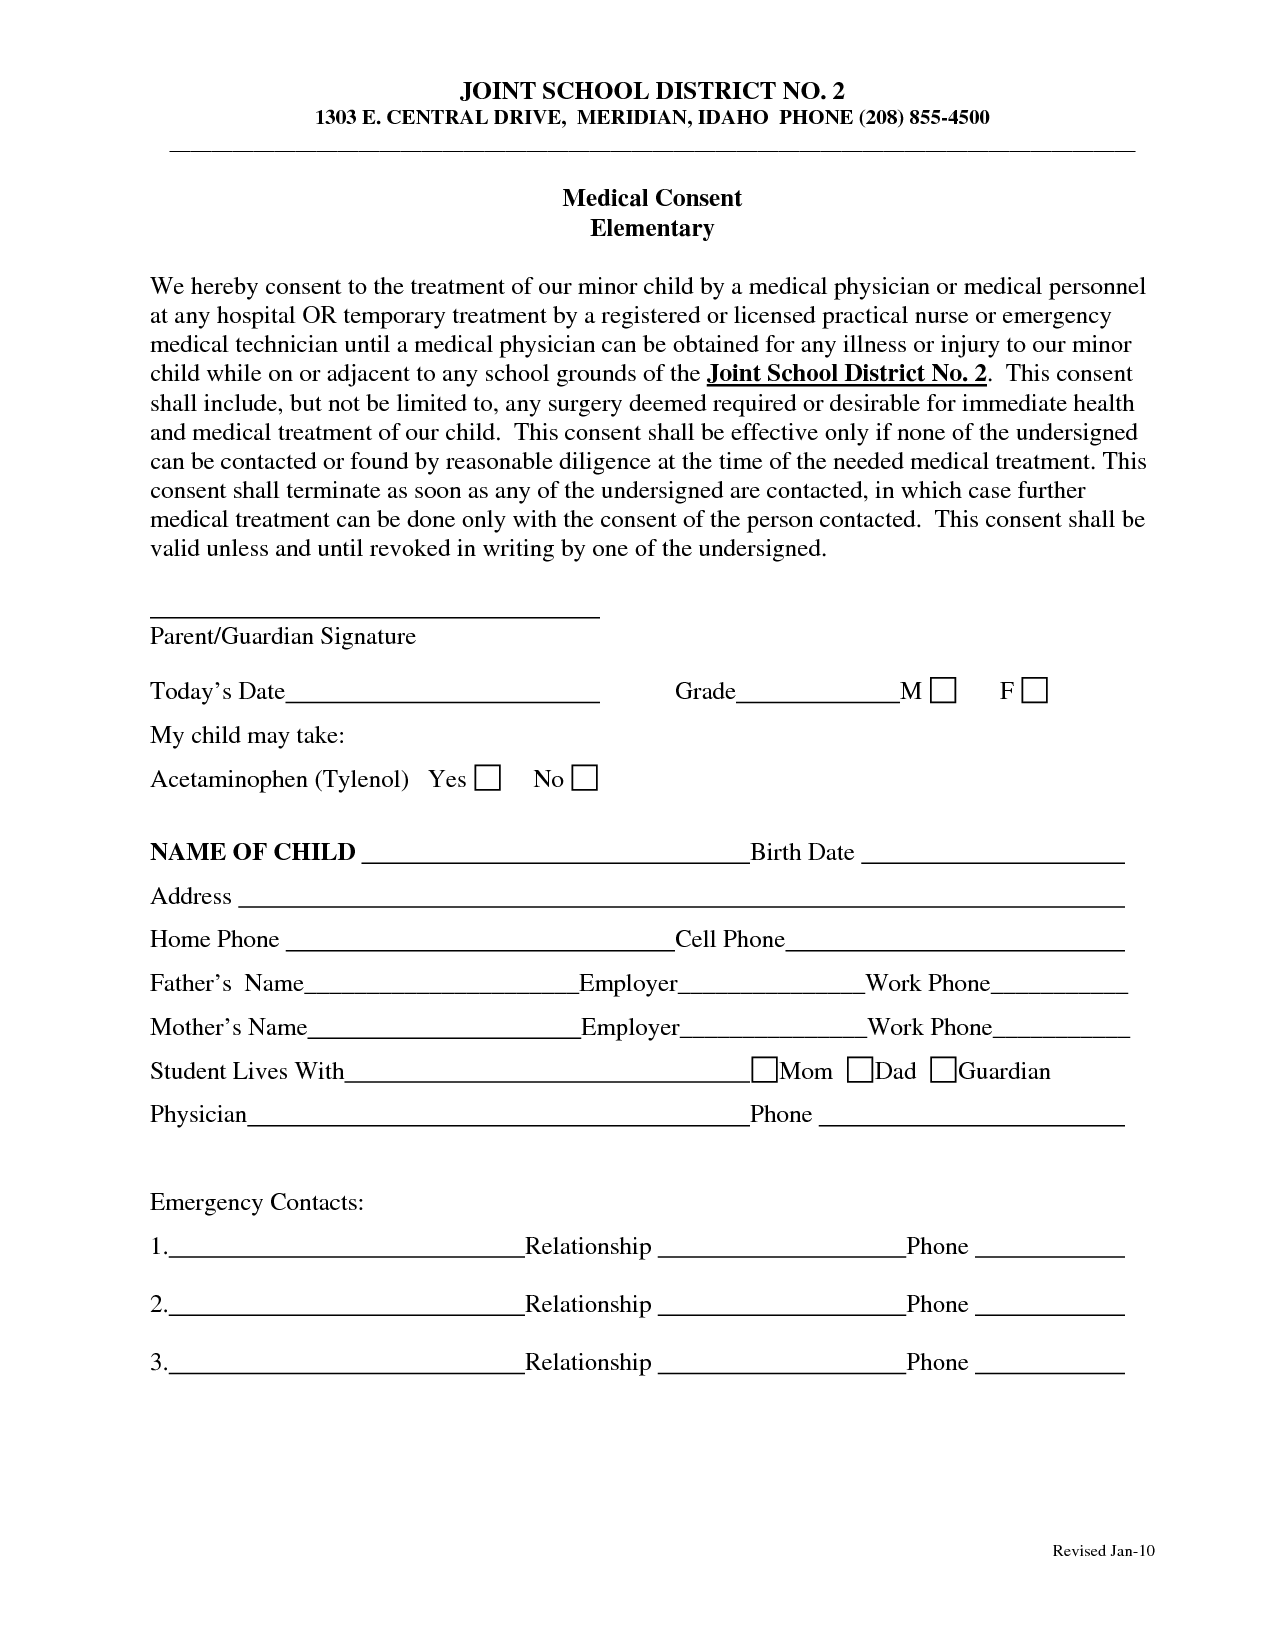 Medical Consent Form Template. school trip consent form   buy